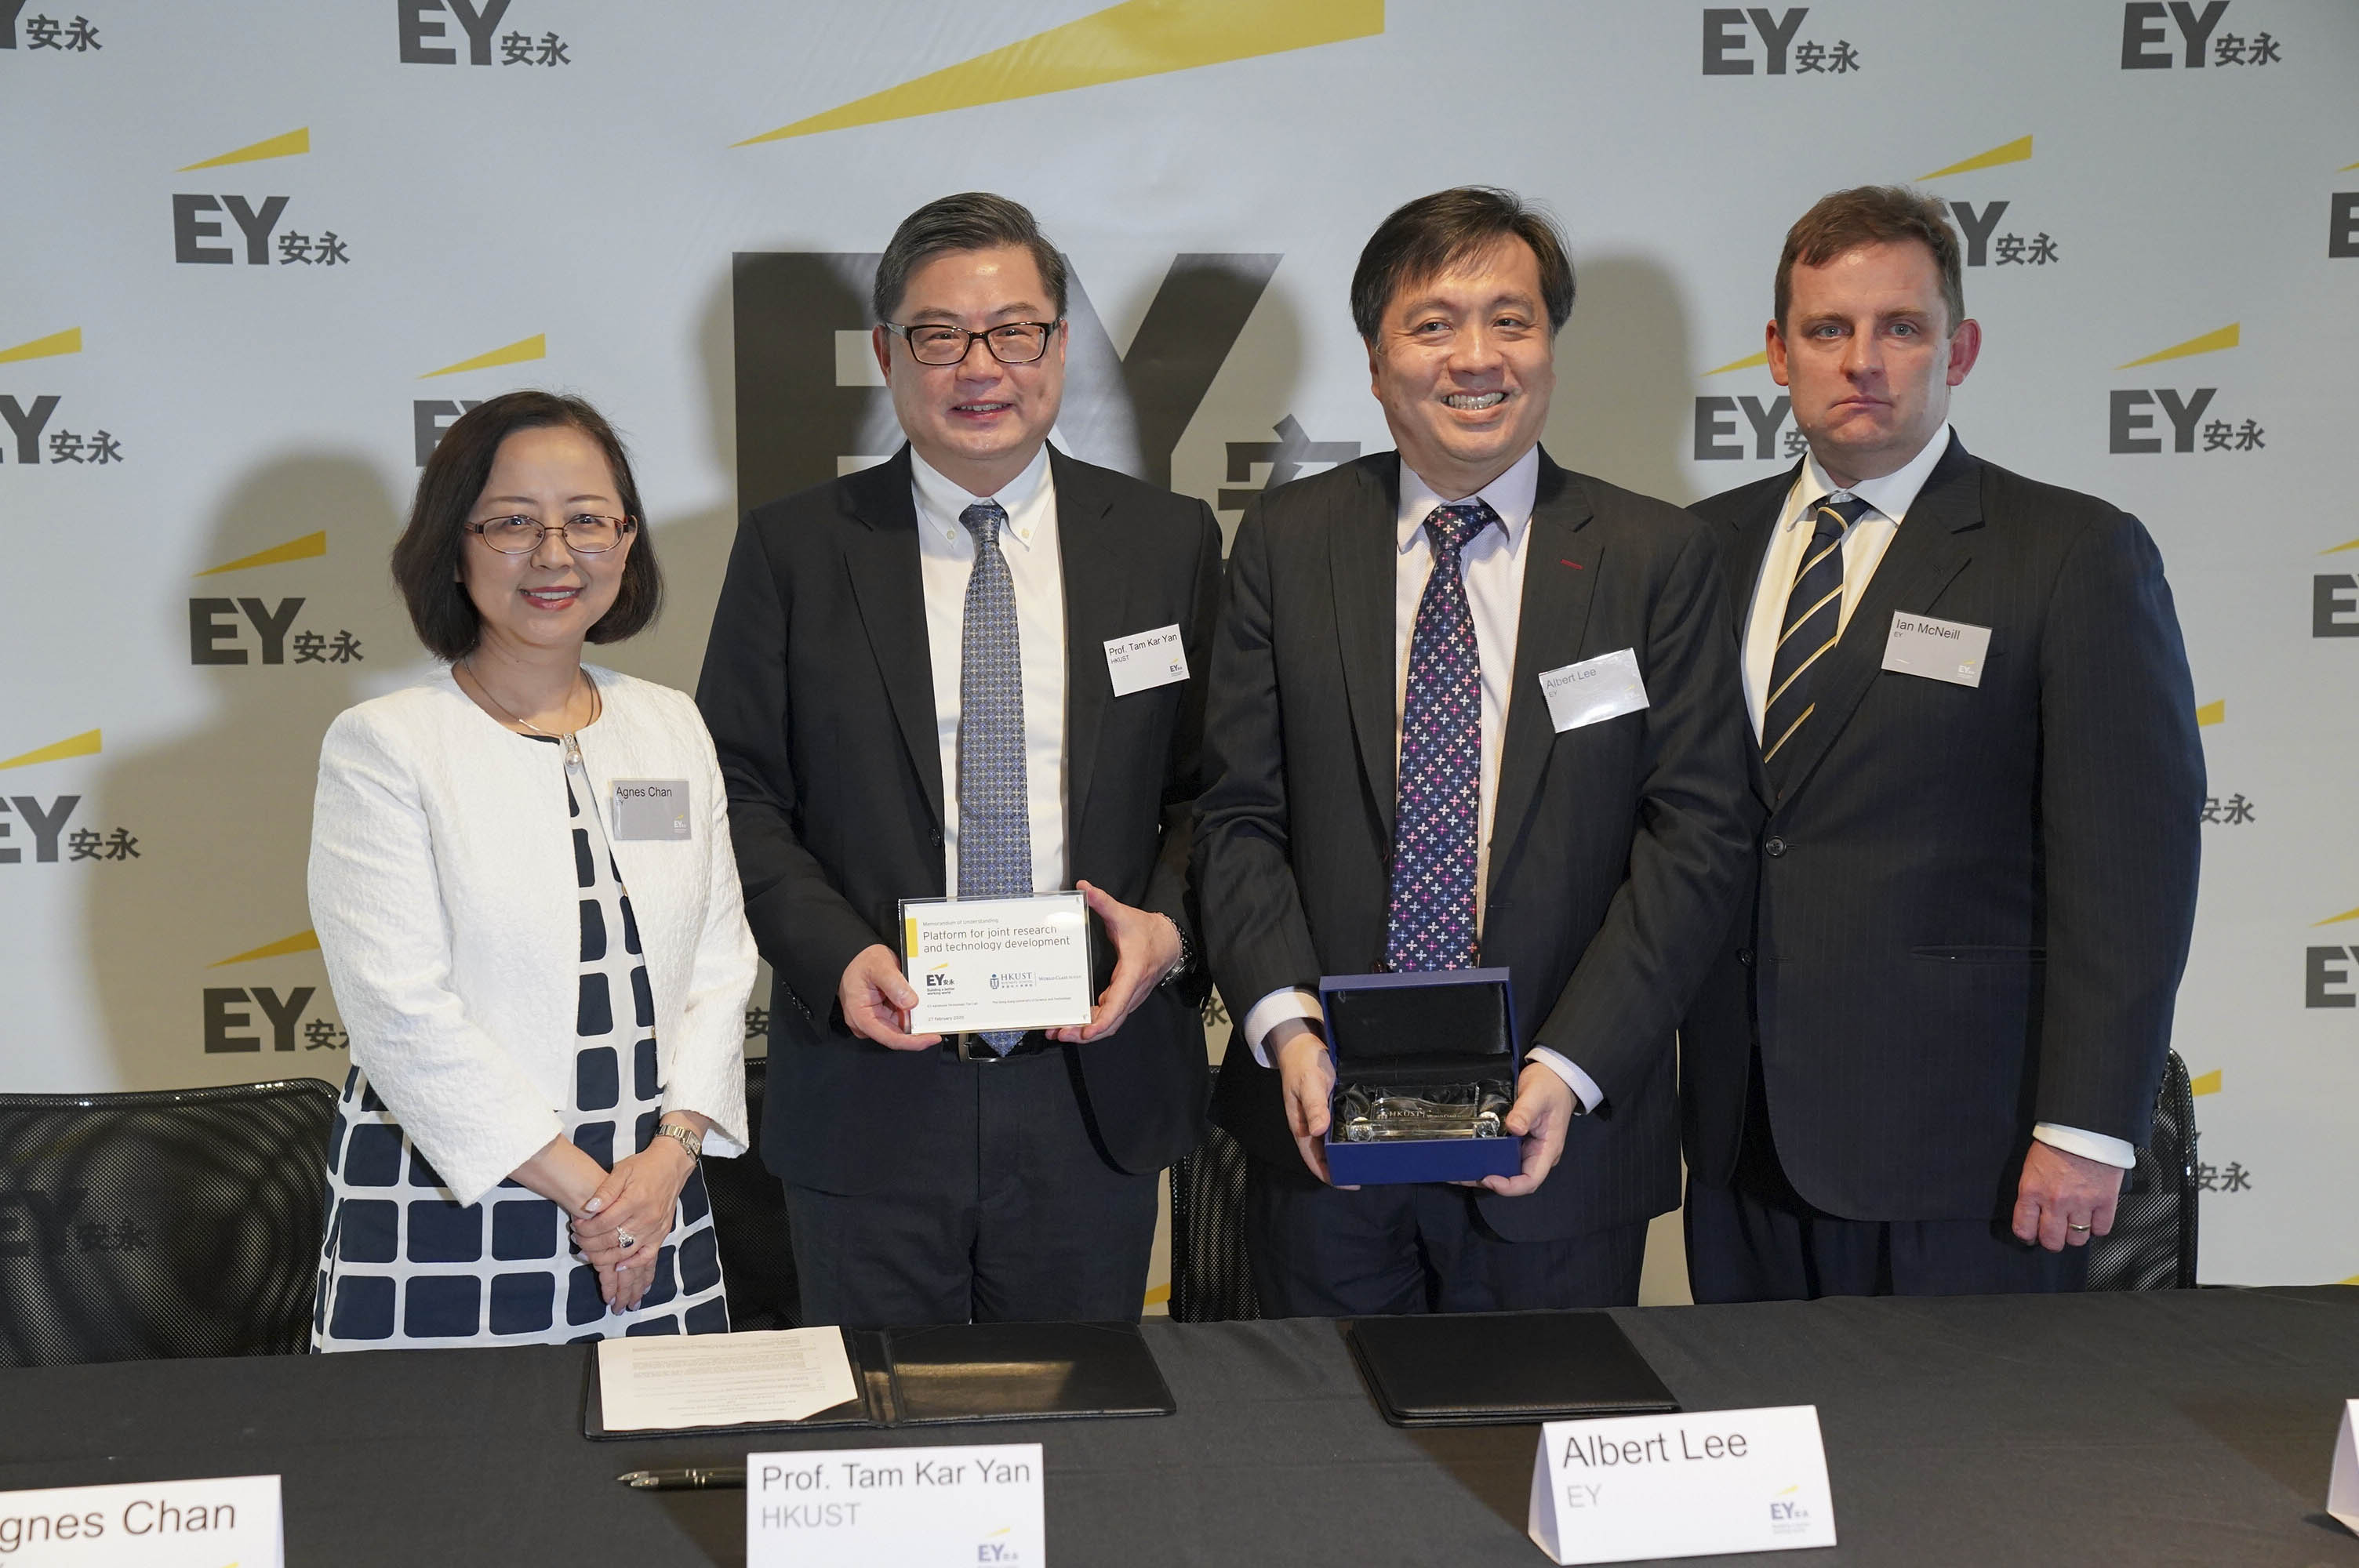 (From left) Agnes CHAN, EY Managing Partner – Hong Kong & Macau; Prof. TAM Kar Yan, Dean of HKUST Business School; Albert LEE, EY Global Tax Technology and Transformation Co-Leader and Asia-Pacific Tax Technology and Transformation Leader; and Ian MCNEILL, EY Asia Pacific Tax Deputy Leader